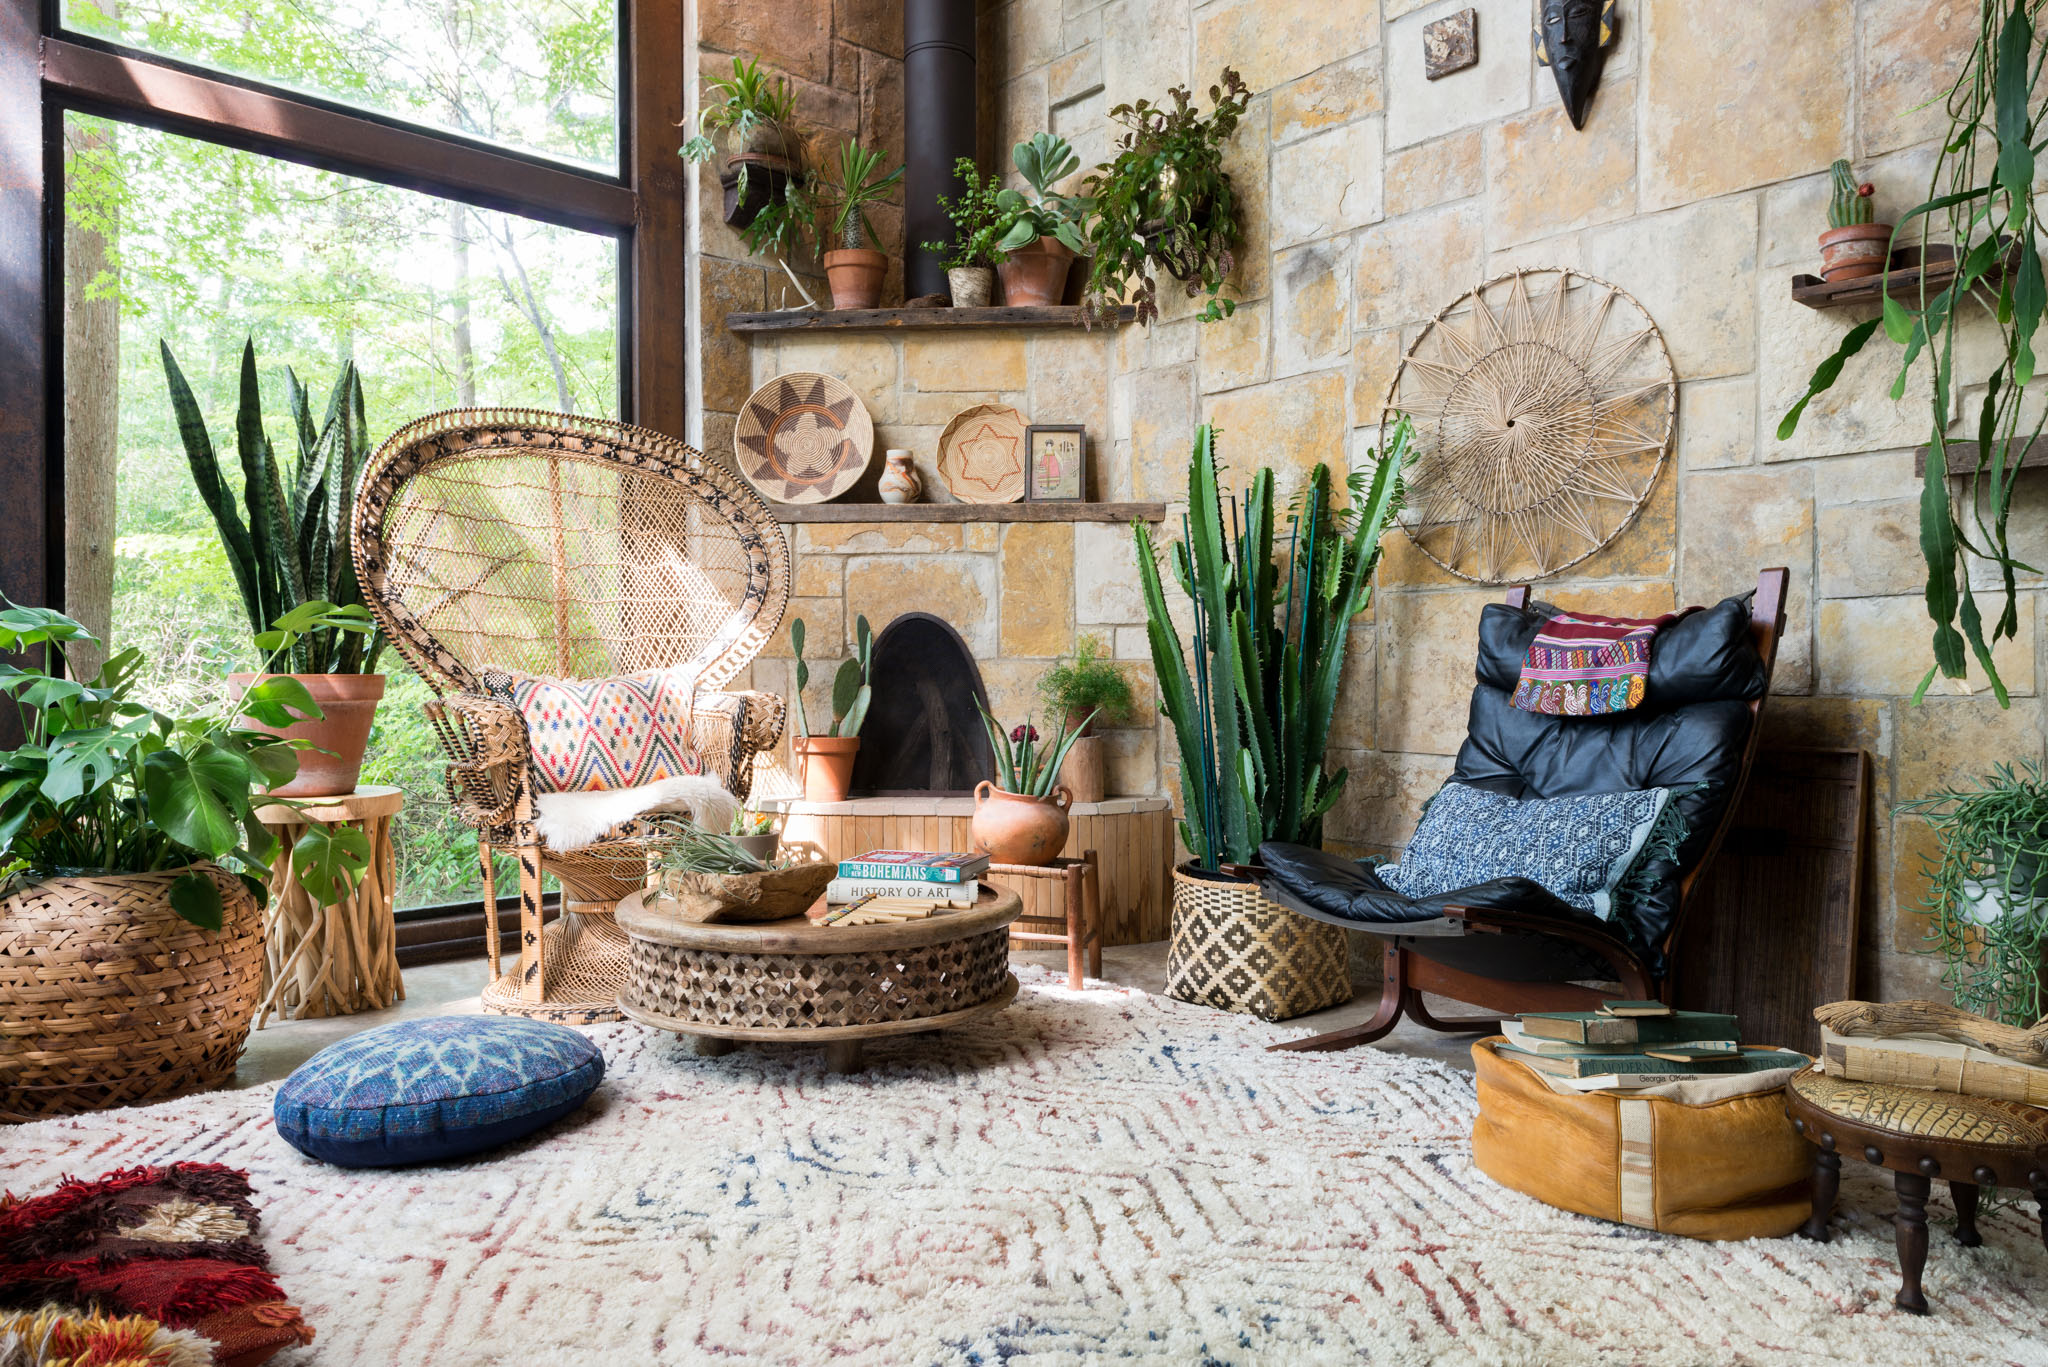 Moroccan Style Home with Moroccan Decor